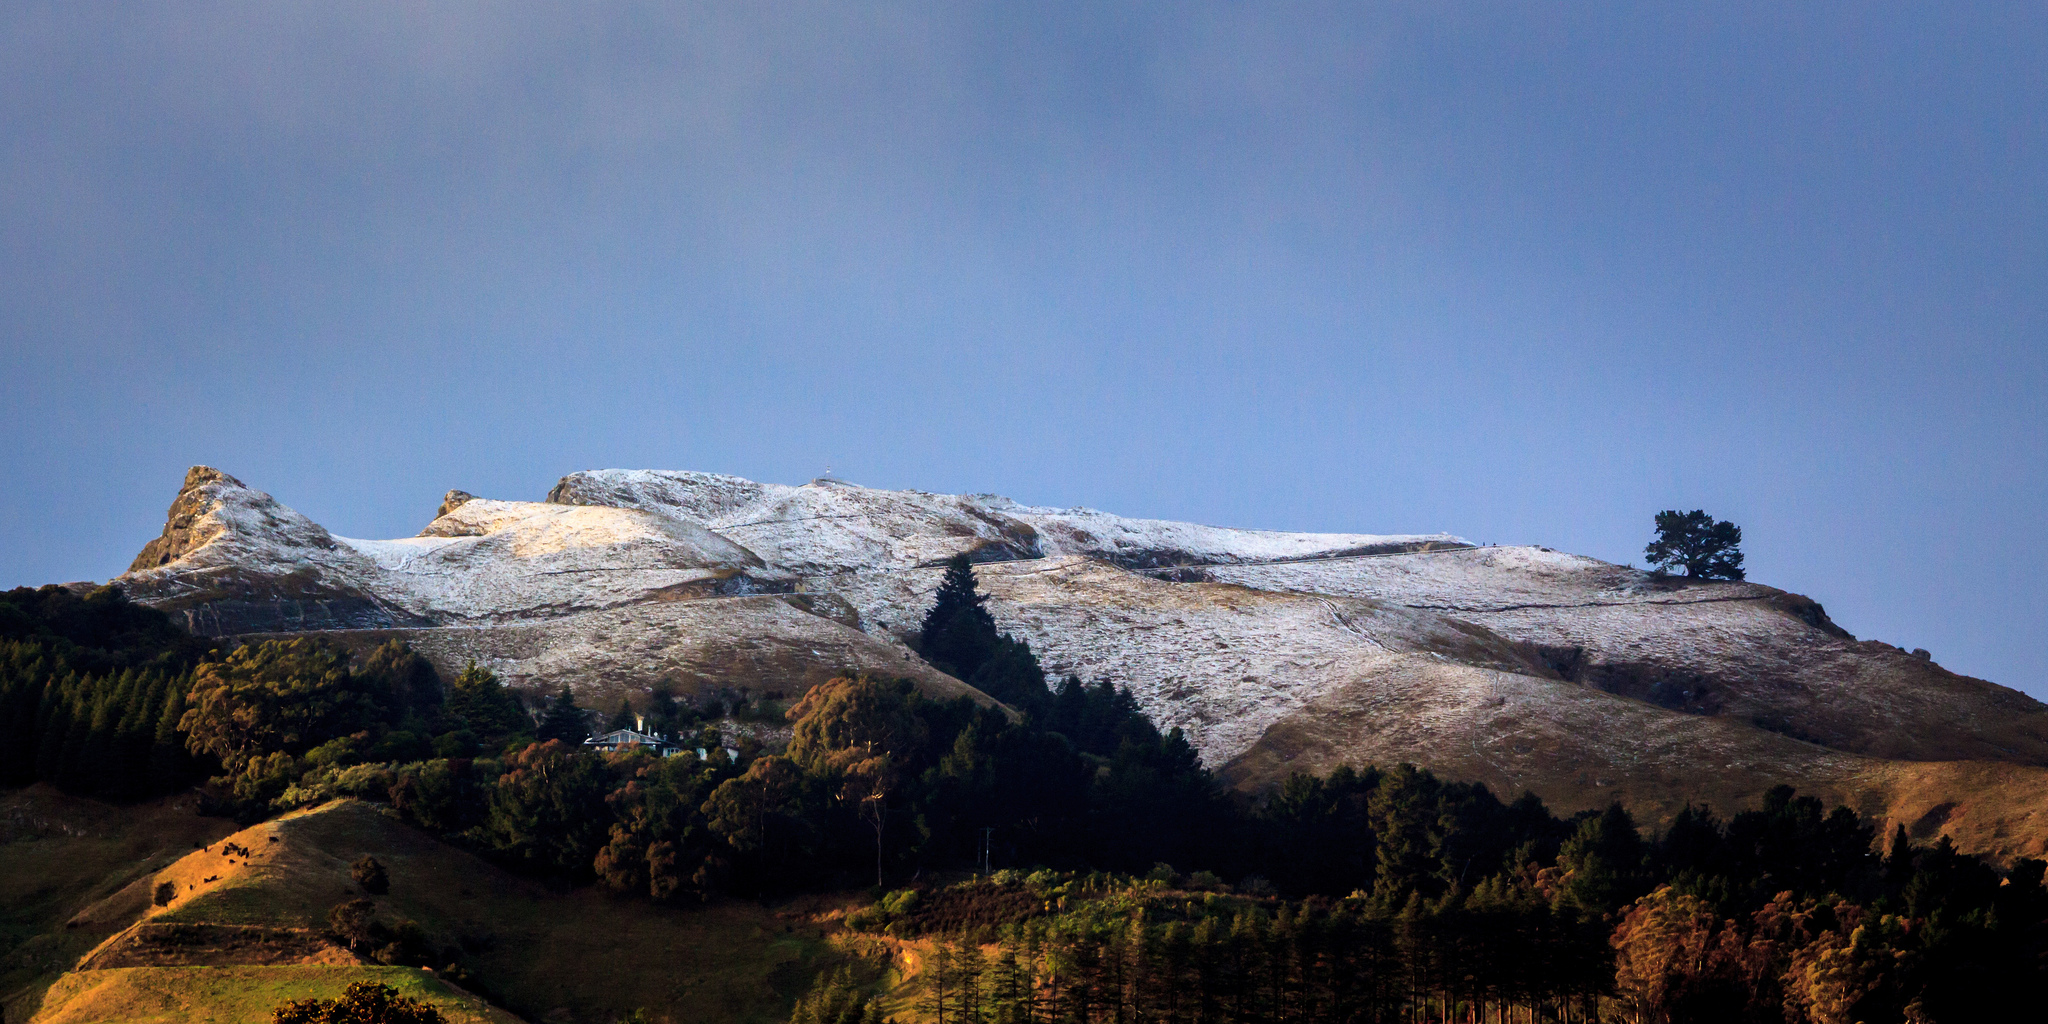 Snow on Te Mata Peak, Jos Buurmans July 10, 2015